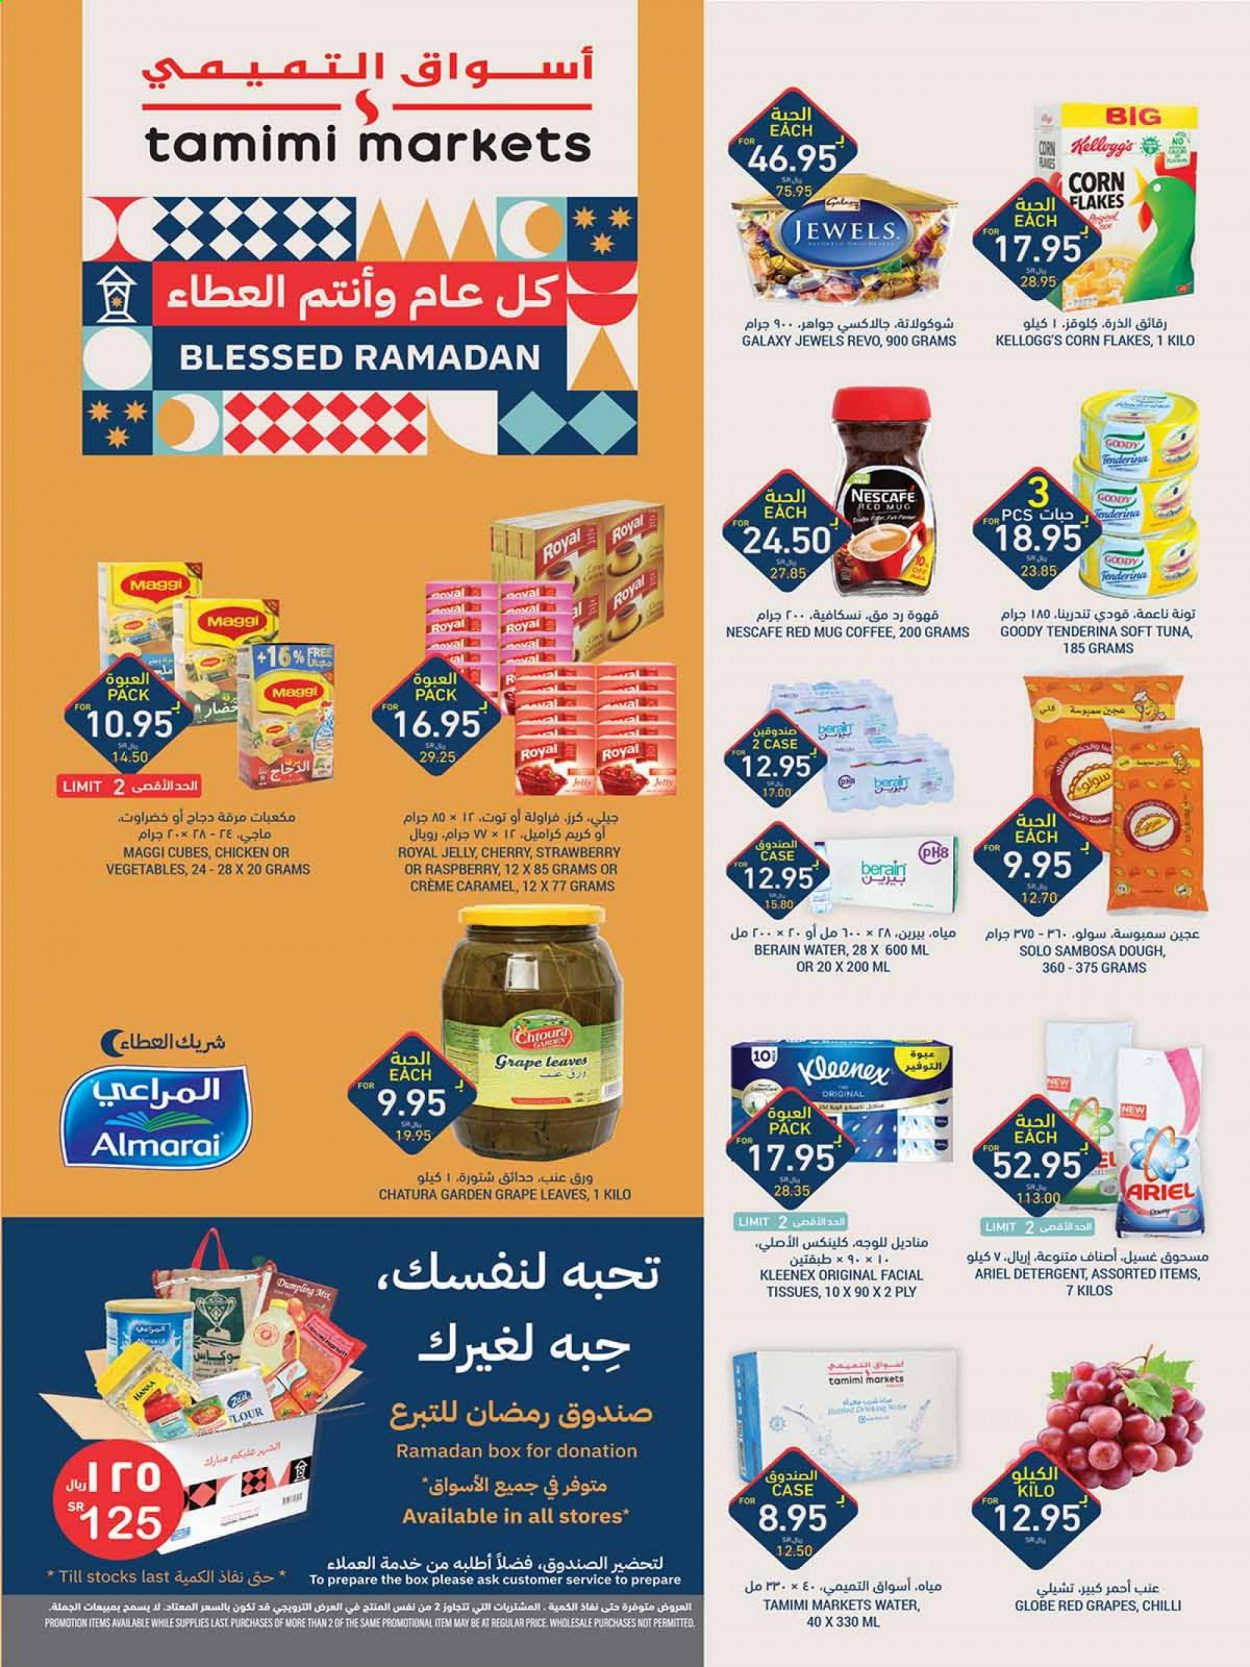 Tamimi Markets Flyer  - 04.29.2020 - 05.05.2020. Page 3.